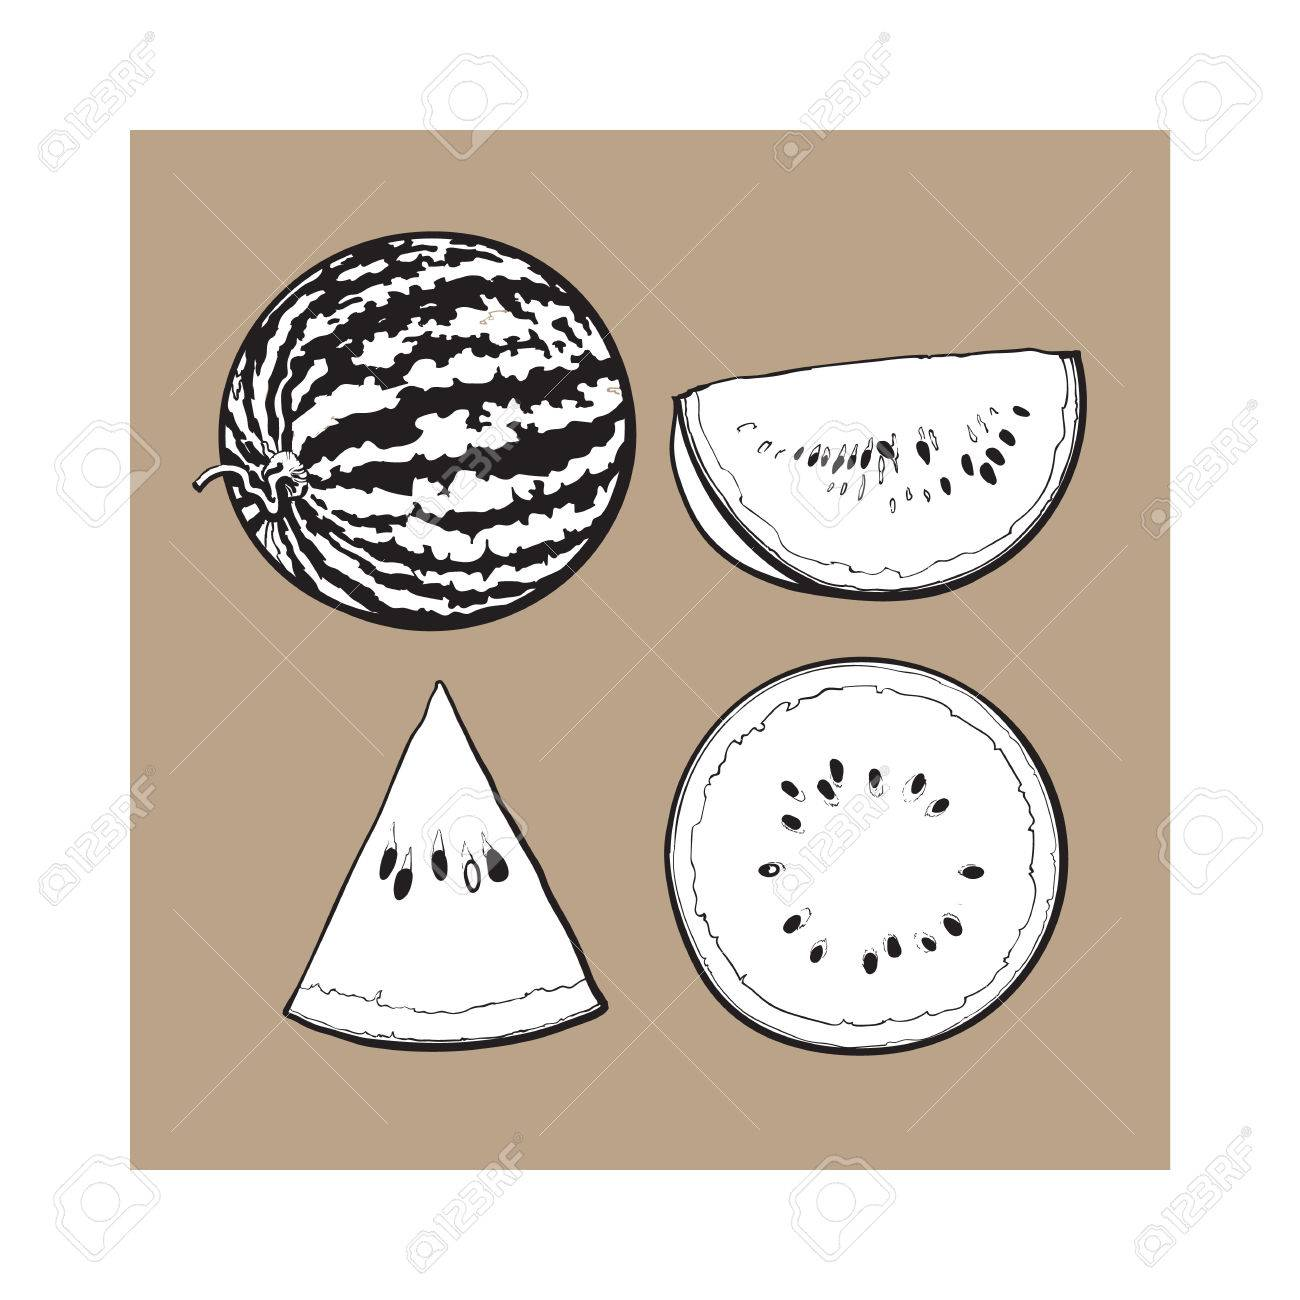 Black and white whole half quarter and slice of ripe watermelon